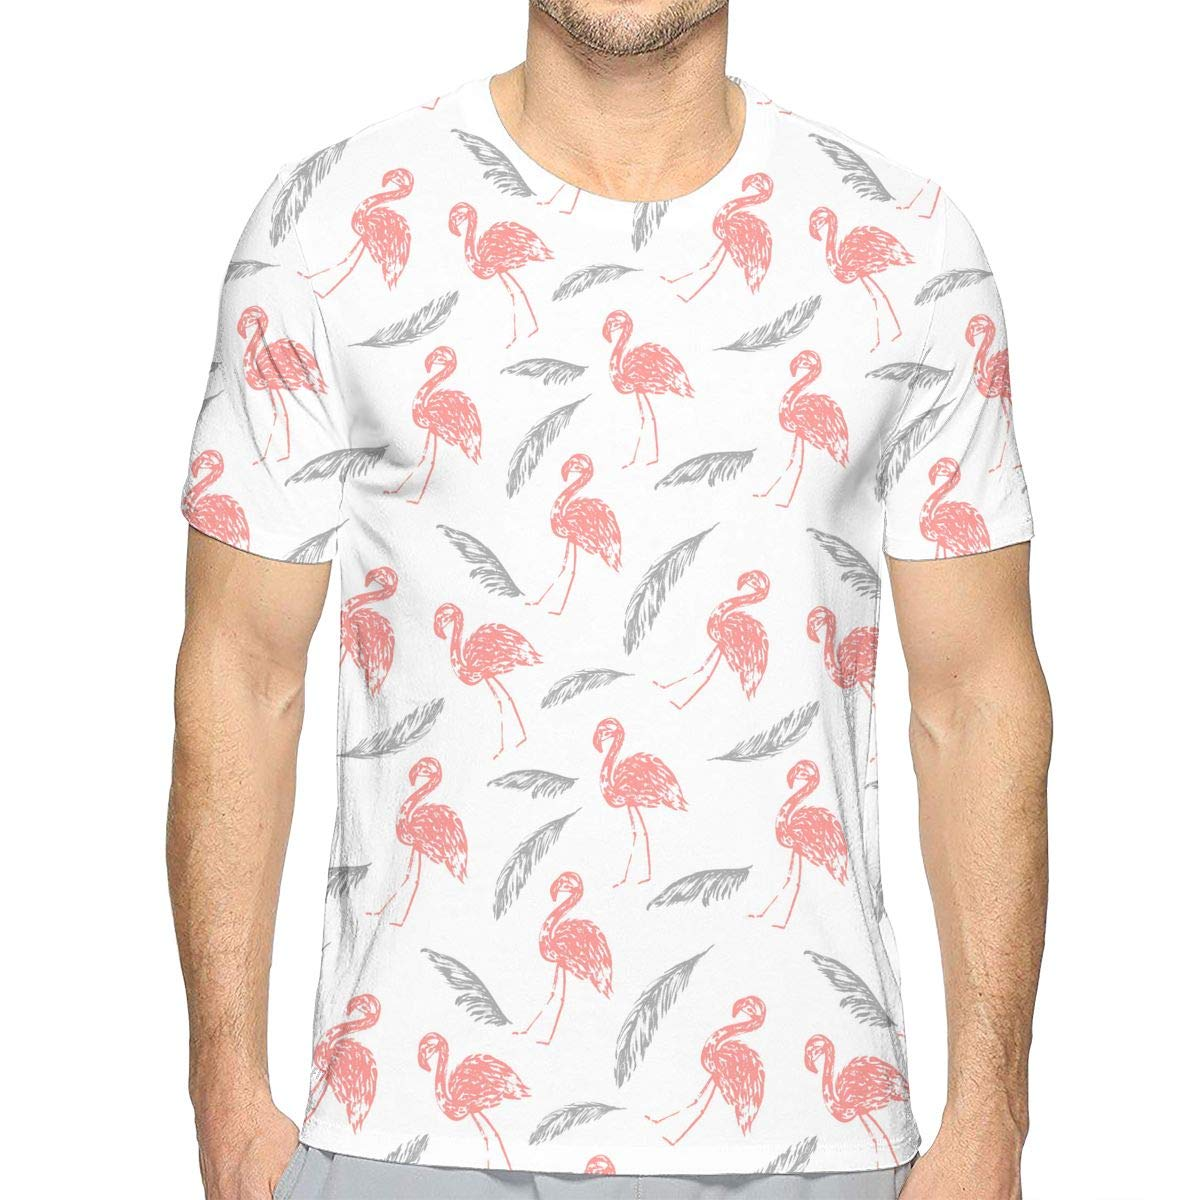 TAOHJS106 Summer Flamingo and Palm Leave Pattern Mens Crewneck Short Sleeve T Shirts Best for Soccer Athletic